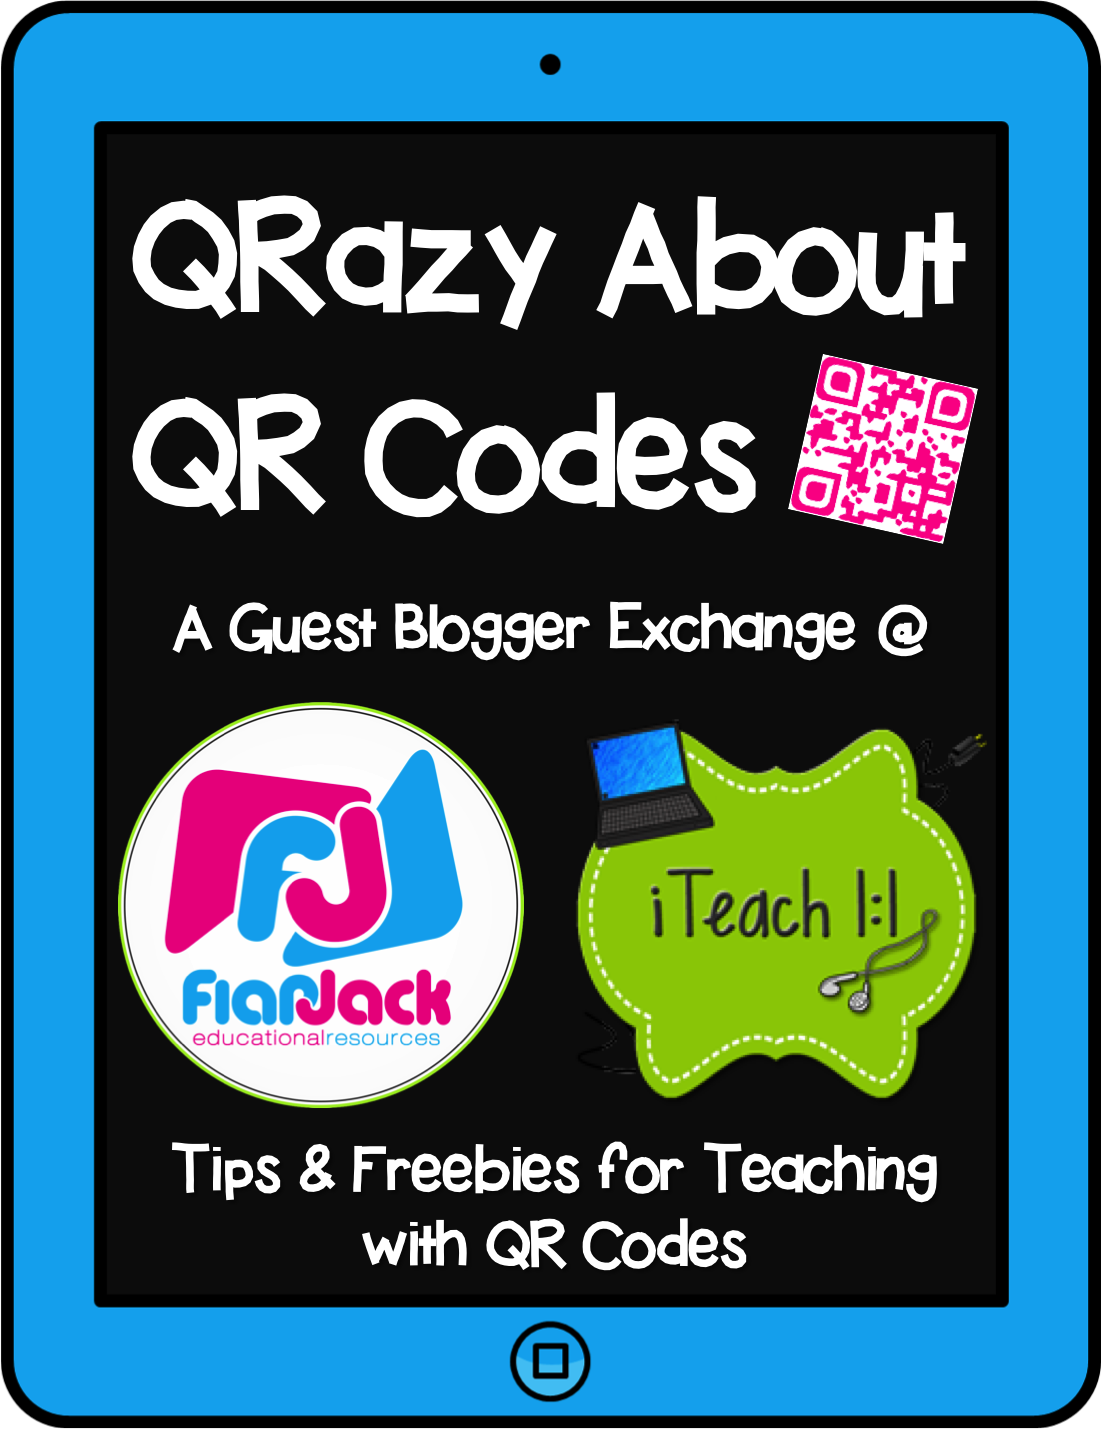 Iteach 1 1 Qrazy About Qr Codes Guest Blogger